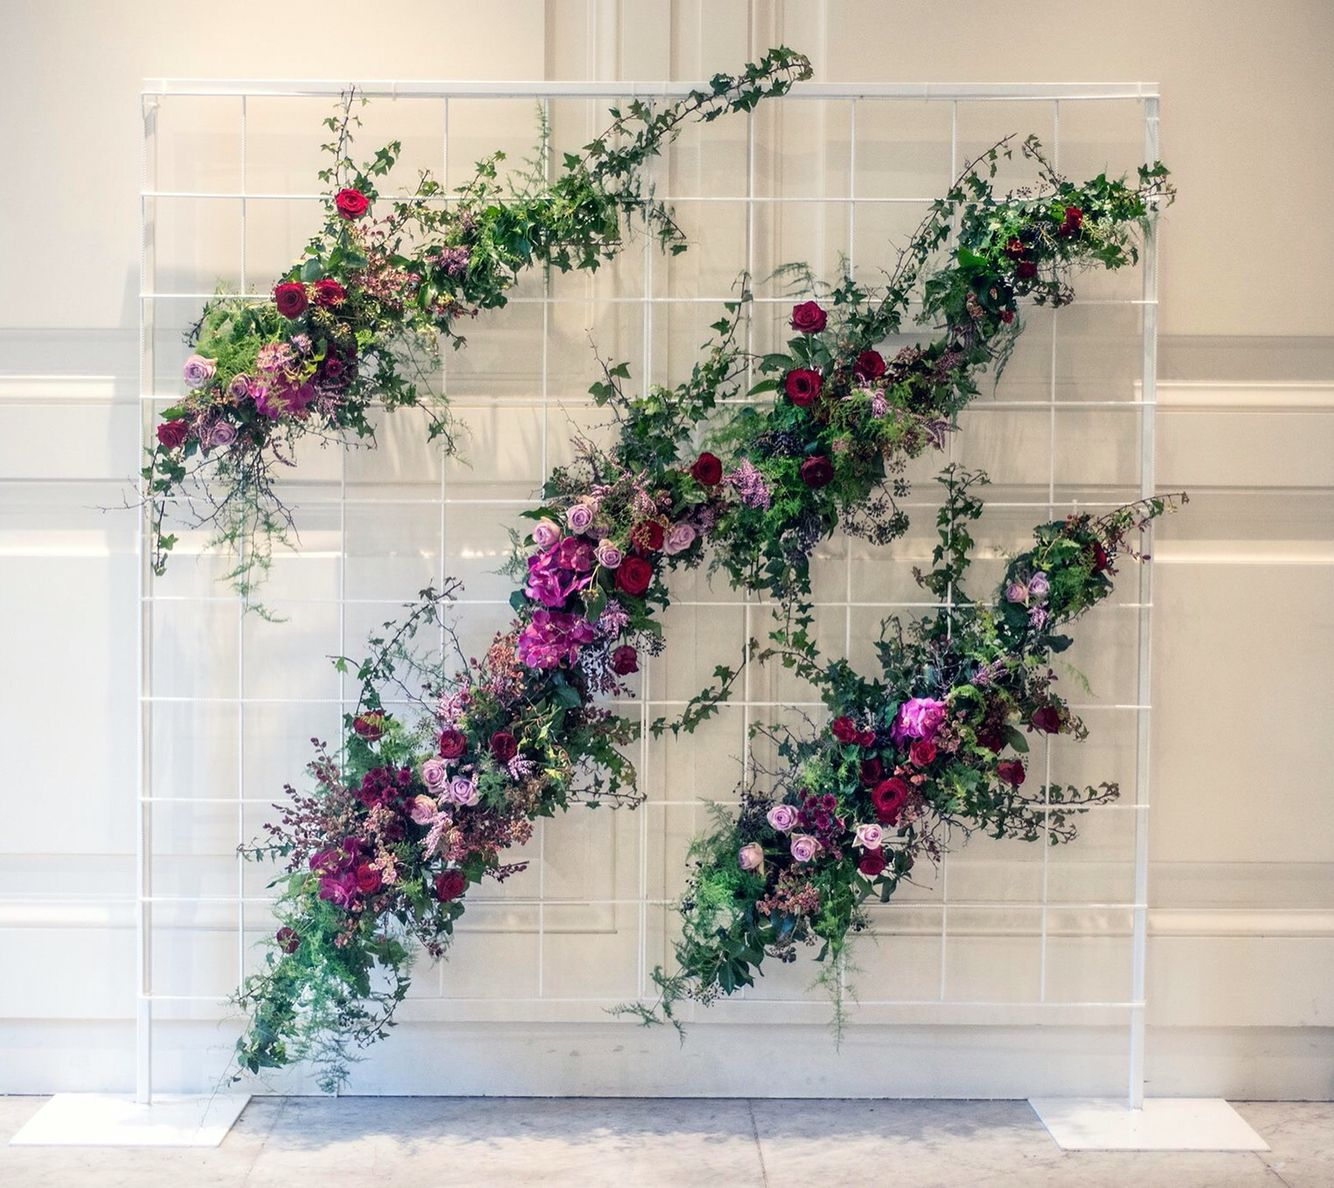 Flower Walls Melbourne Flower Wall Wild Climbing Florals And Foliage Over A White